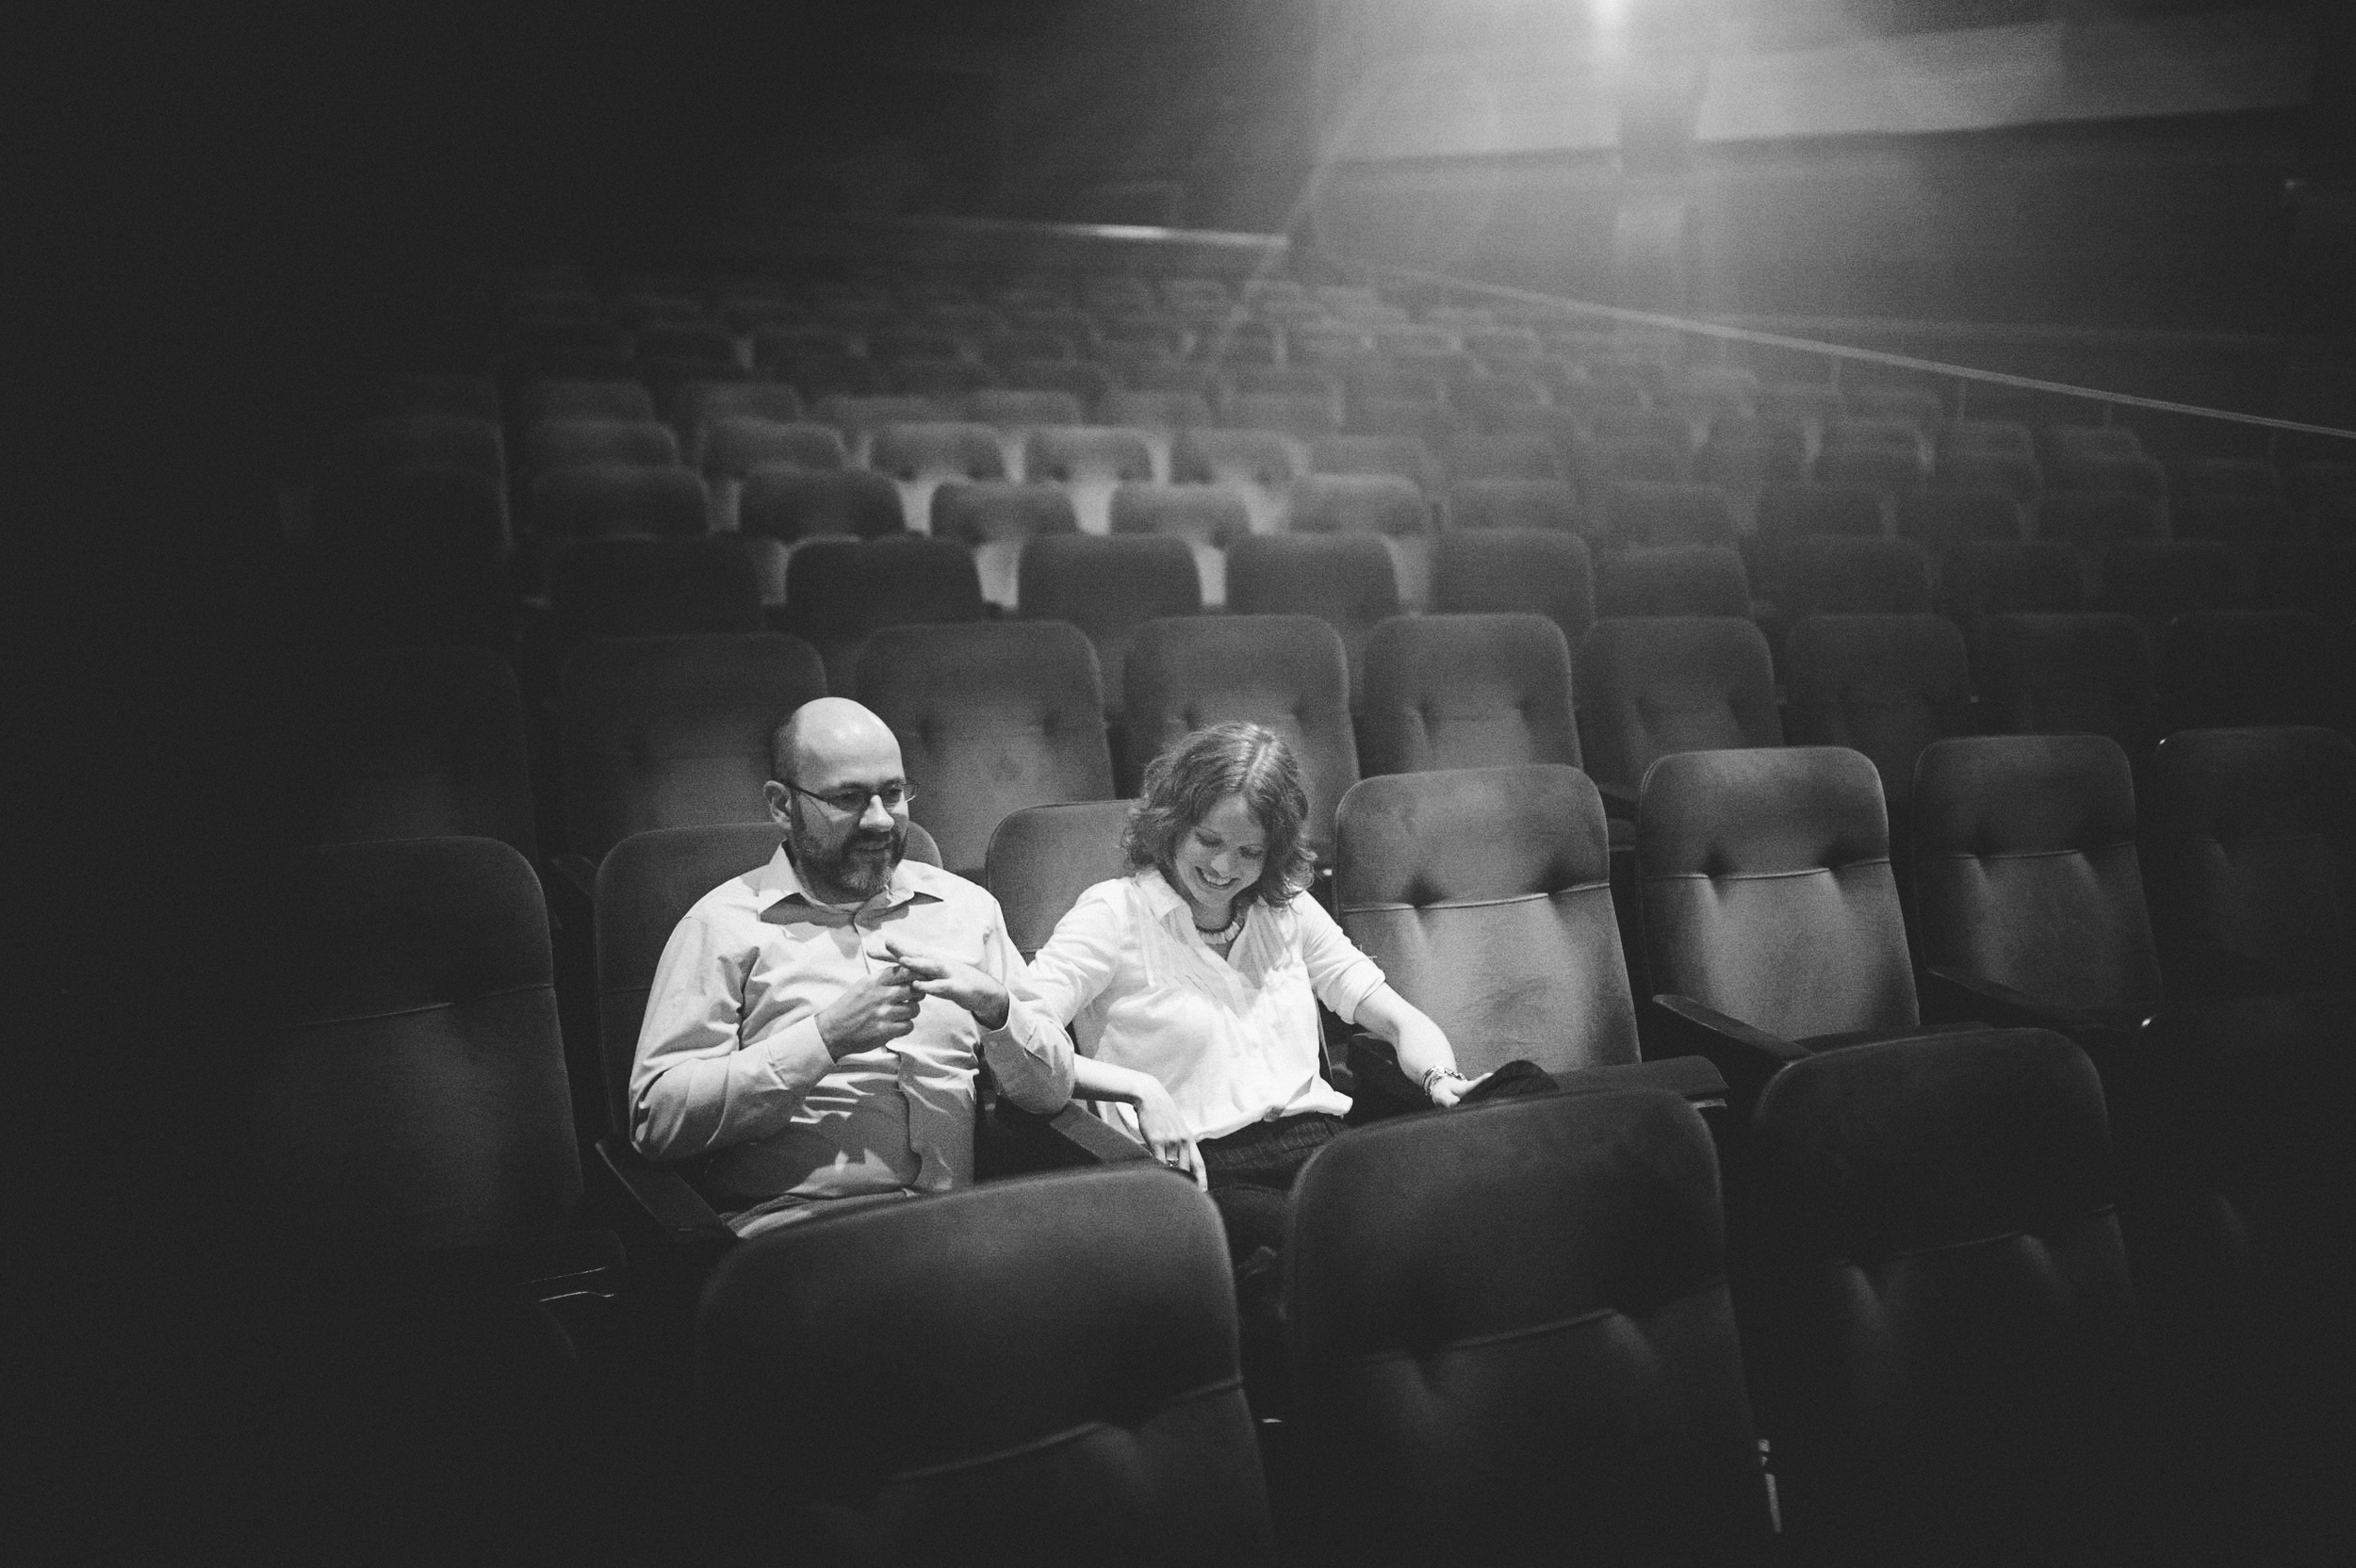 Silver Spring AFI Movie theater Engagement Session Photographer Mantas Kubilinskas-3.jpg